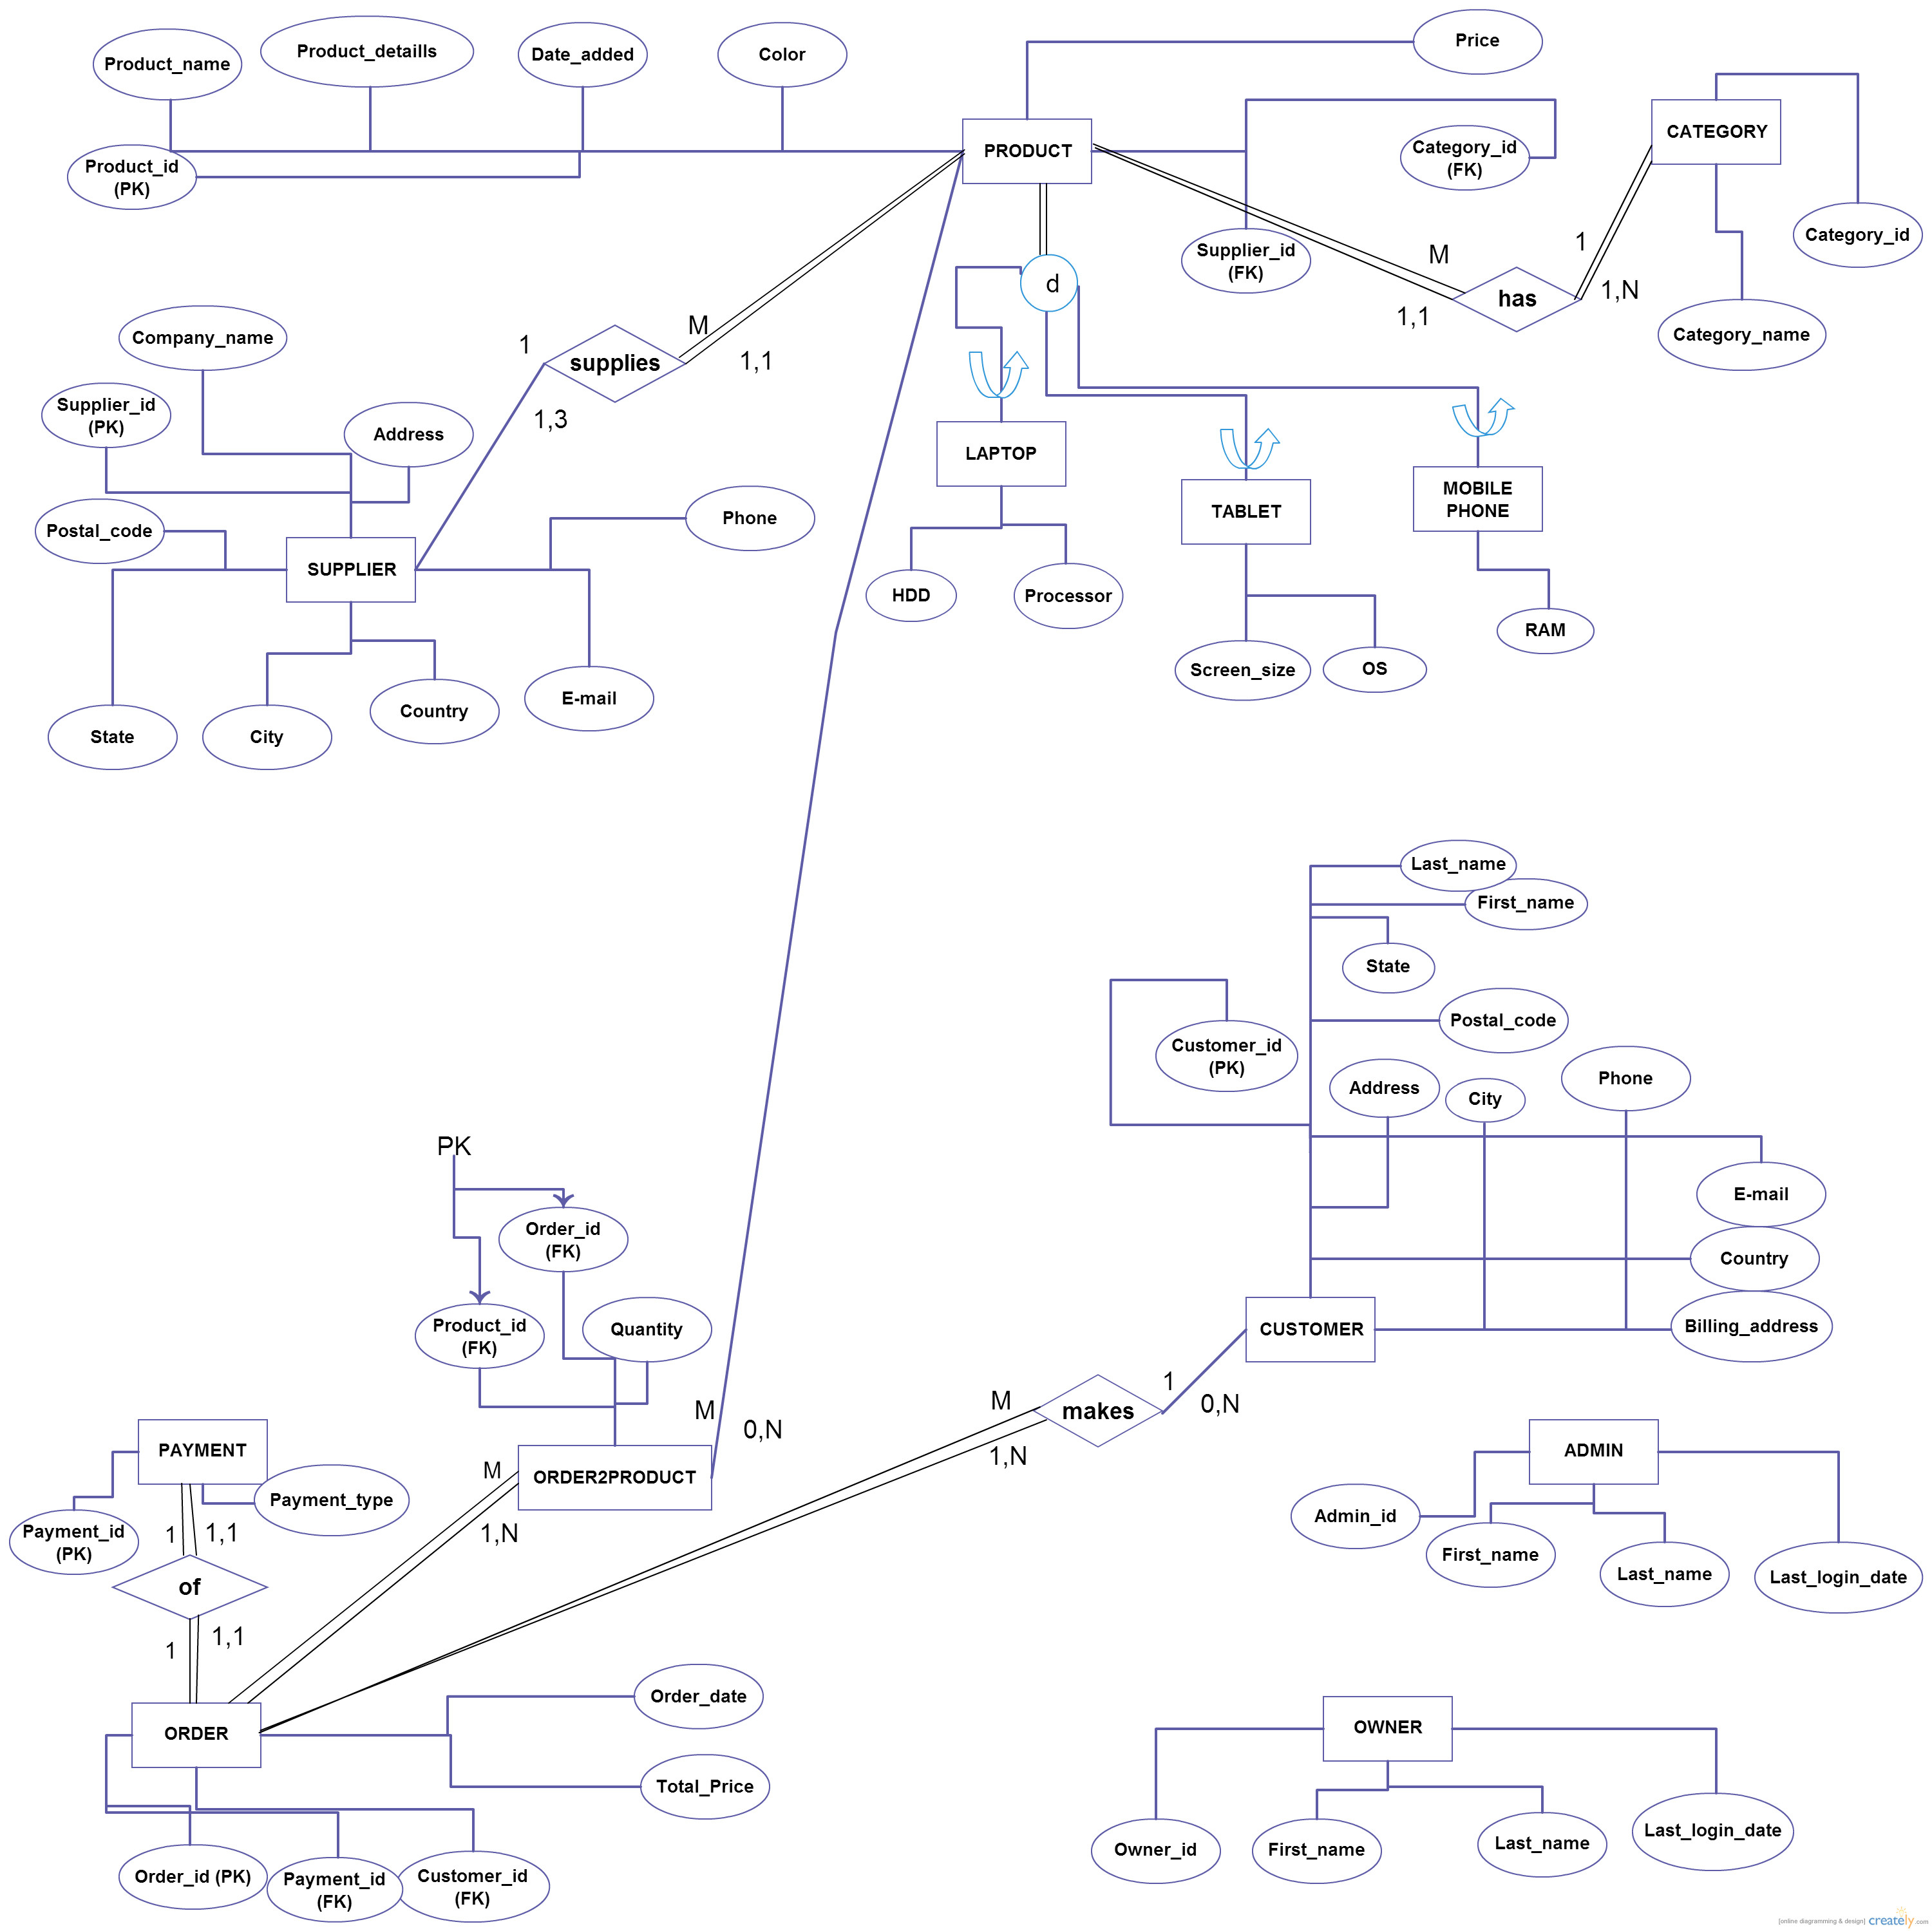 Database - Does This E-R/eer Diagram Contain Correct with regard to Eer Database